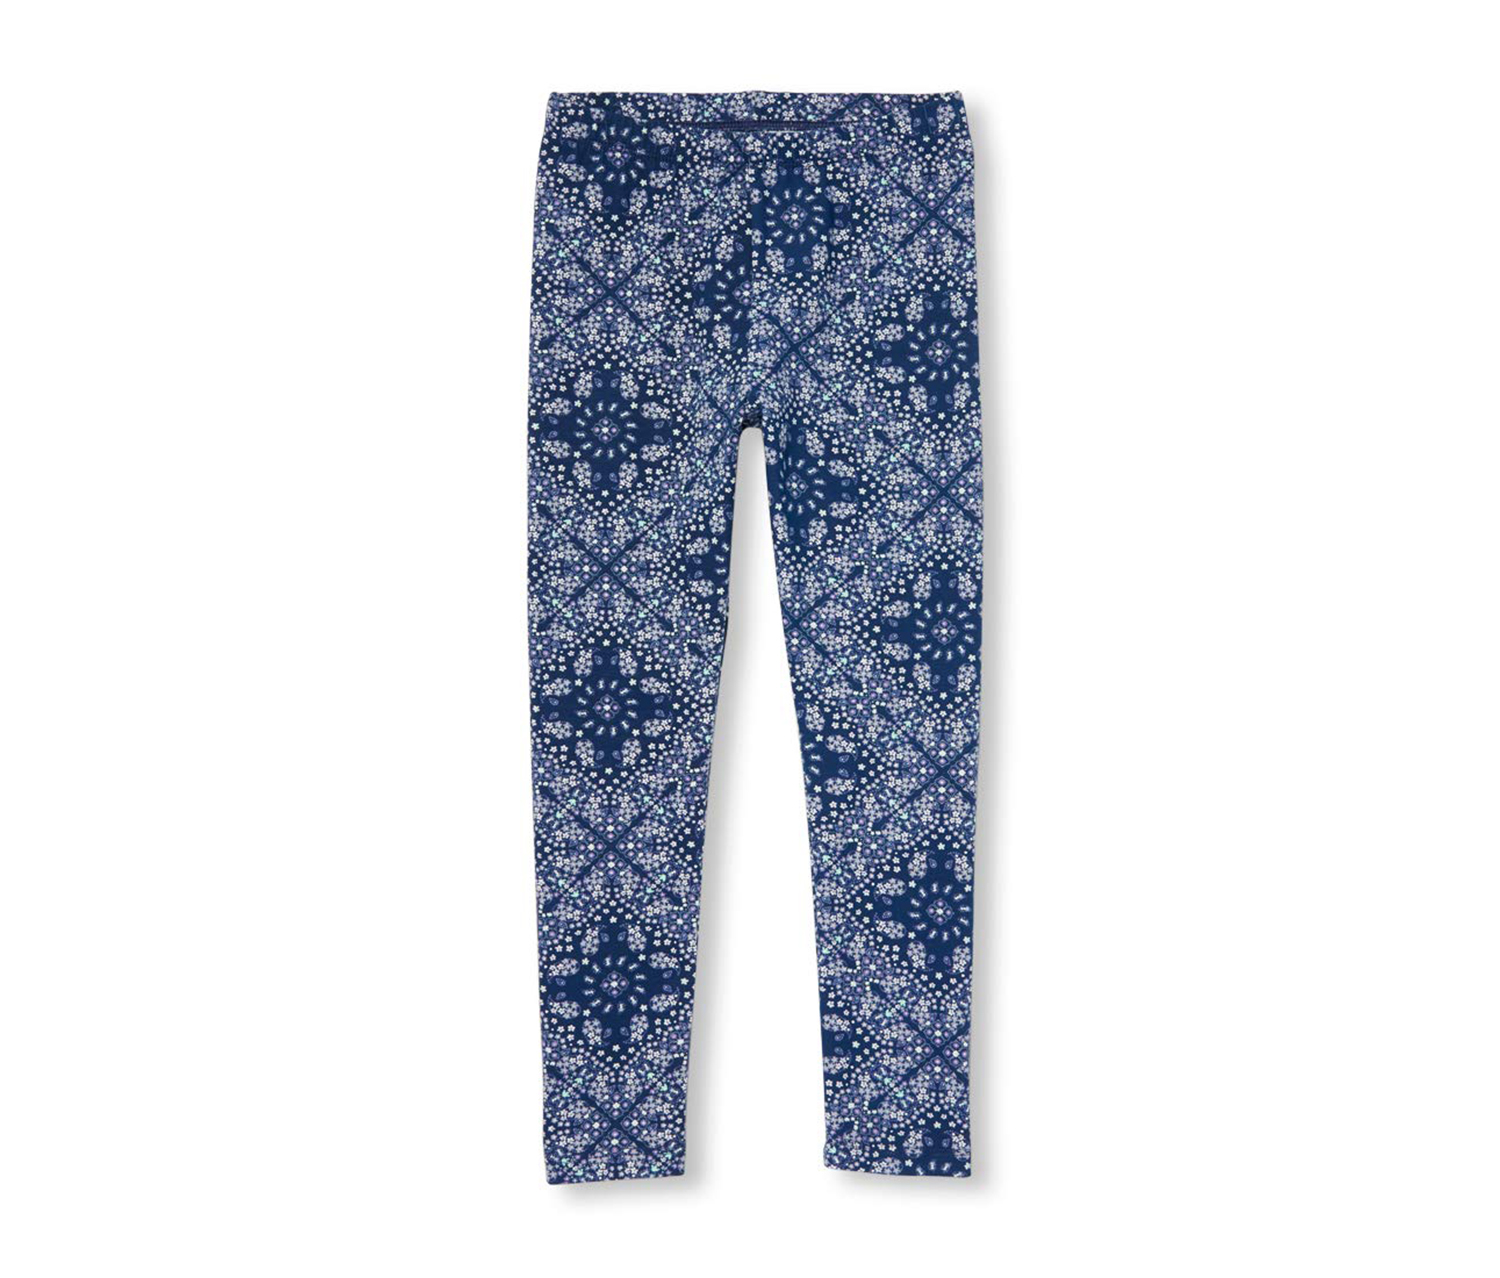 The Children's Place Girls Novelty Printed Leggings, Blue